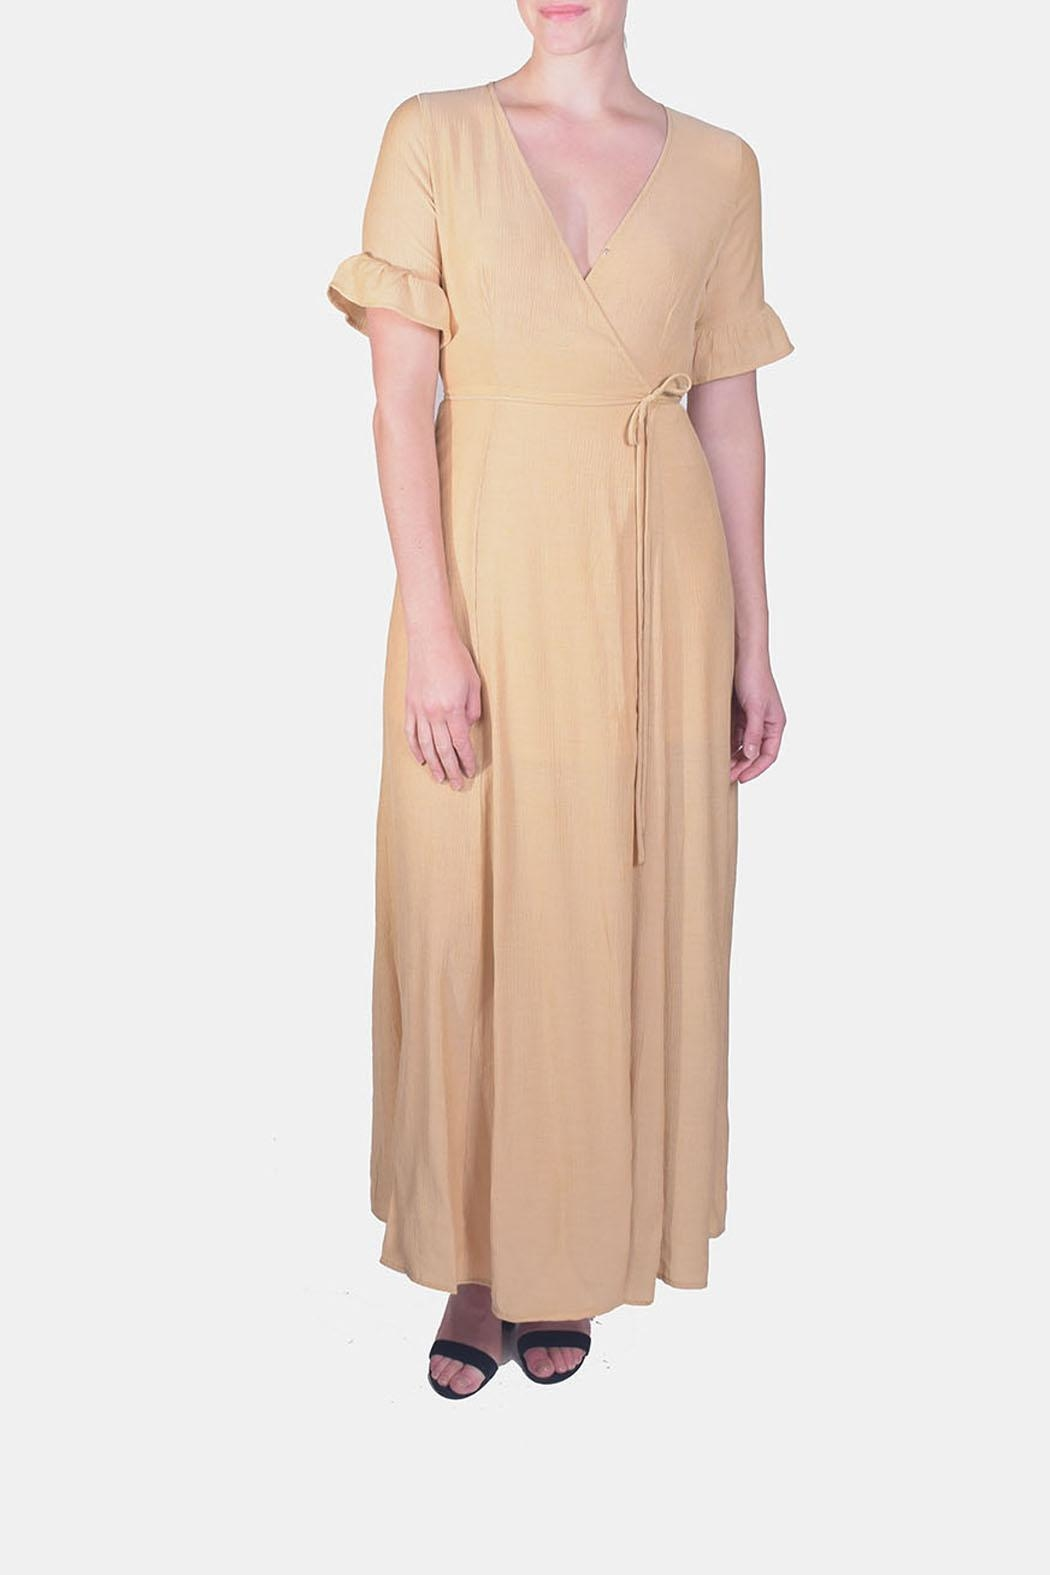 rokoko Angelic Wrap Maxi-Dress - Main Image